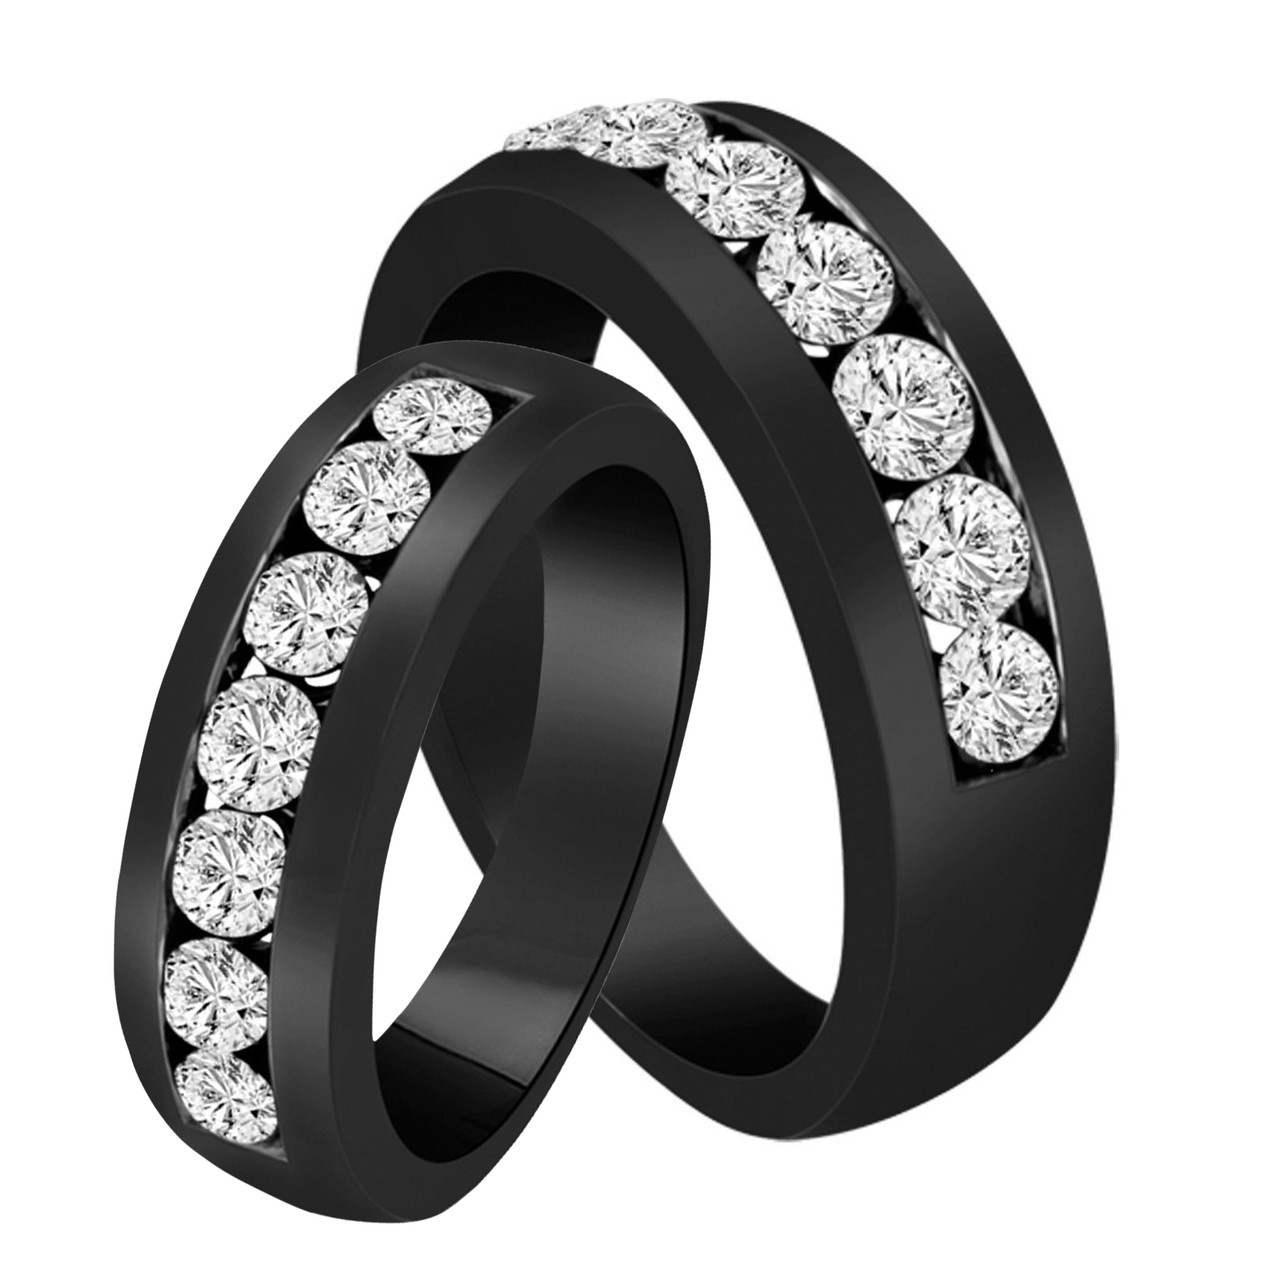 This is an image of His & Hers Wedding Bands, Diamond Matching Rings, Couple Wedding Bands Set, Half Eternity Rings, Unique 48.48 Carat 484K Black Gold